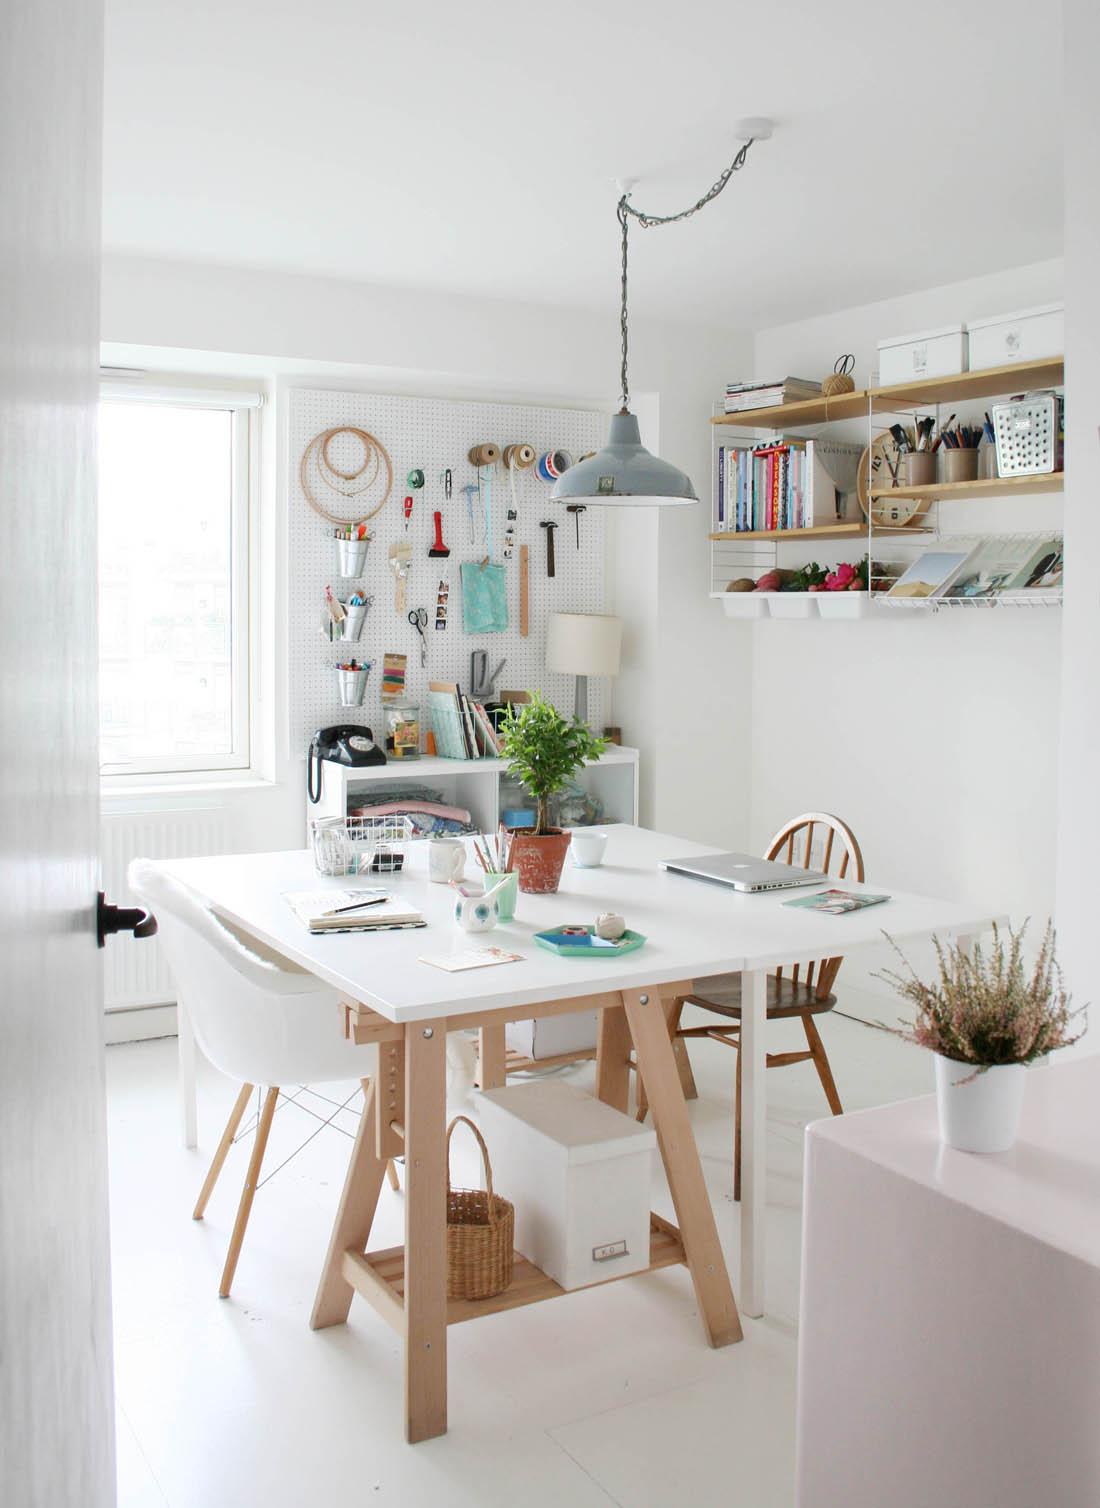 Home office makeover tips with Inkifi | Scandi inspired work space | Apartment Apothecary